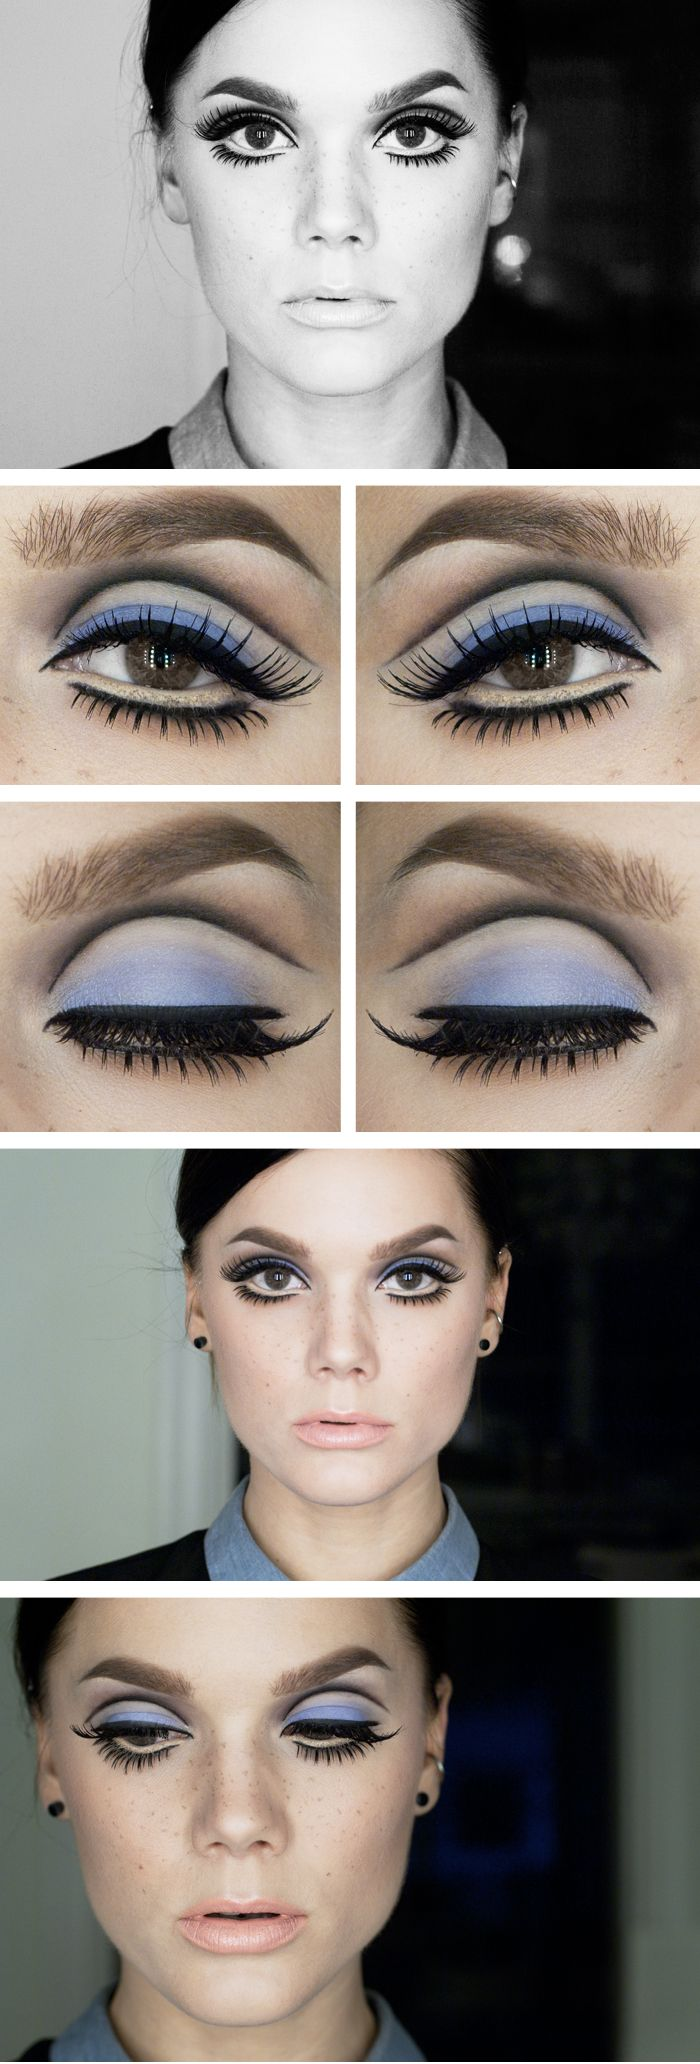 Great Mod Squad Makeup Tutorial Get The Mod Squad Look With